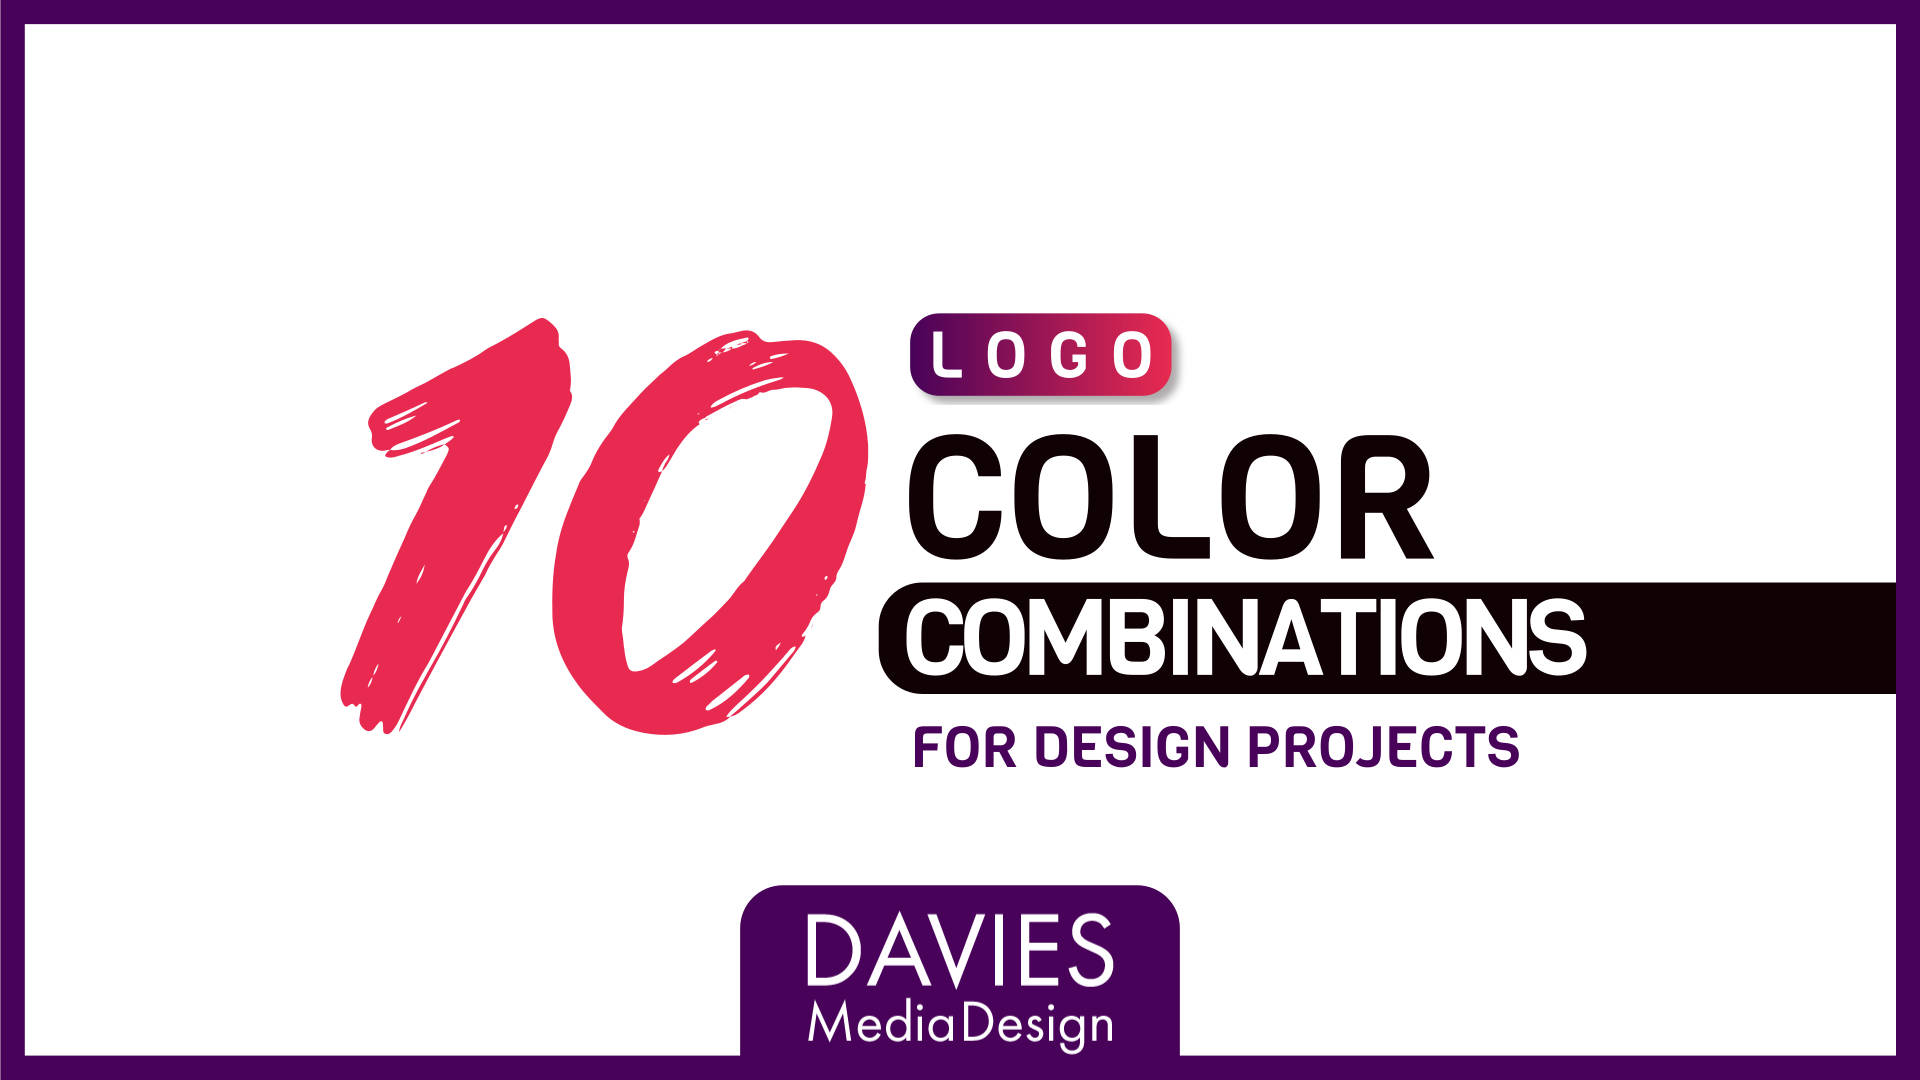 10 Logo Color Combinations for Graphic Design Article